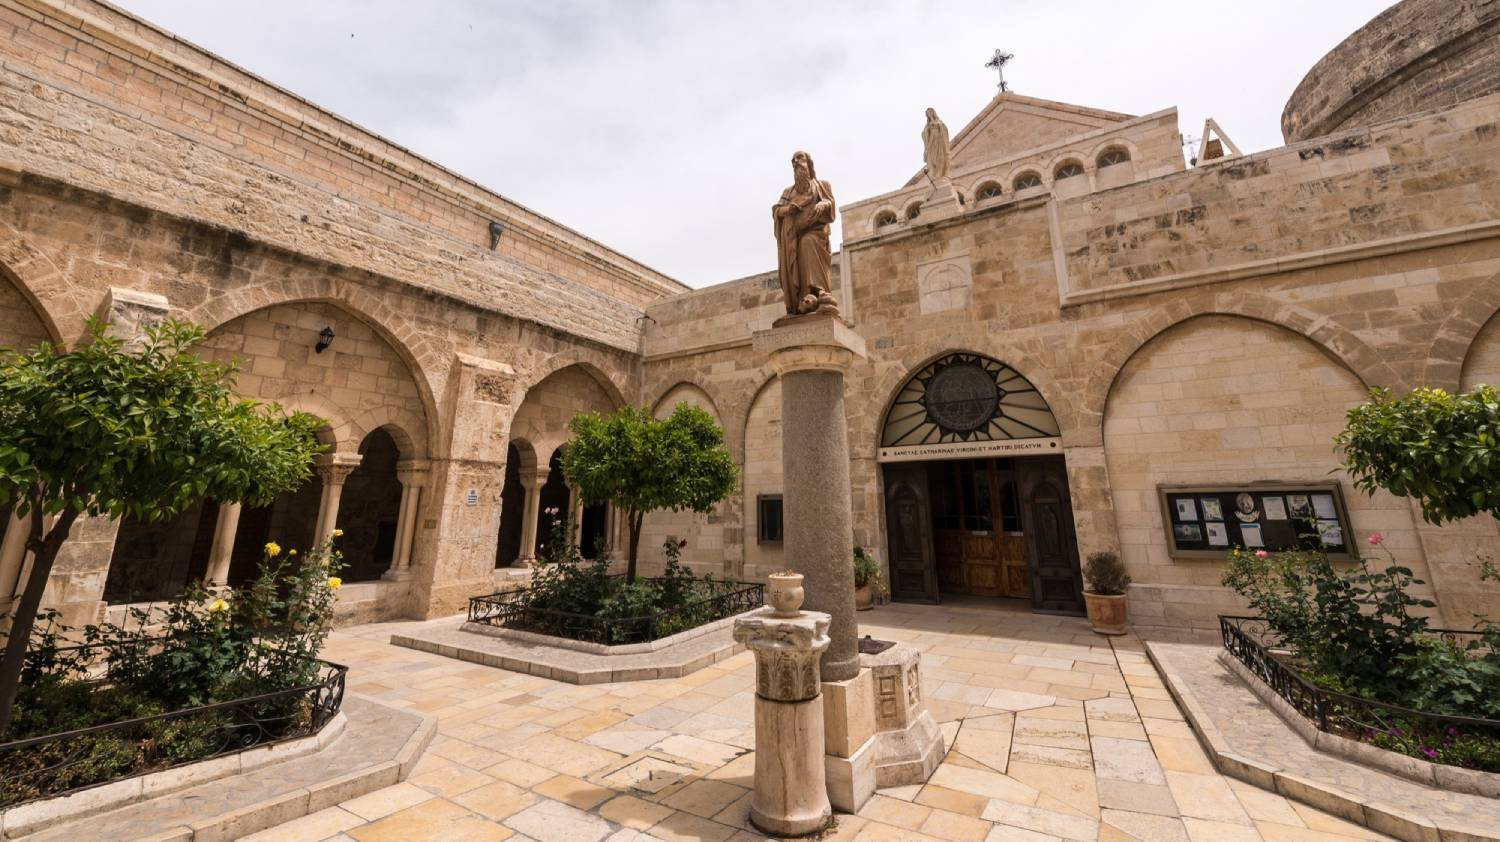 Church of the Nativity - Things To Do In Jerusalem